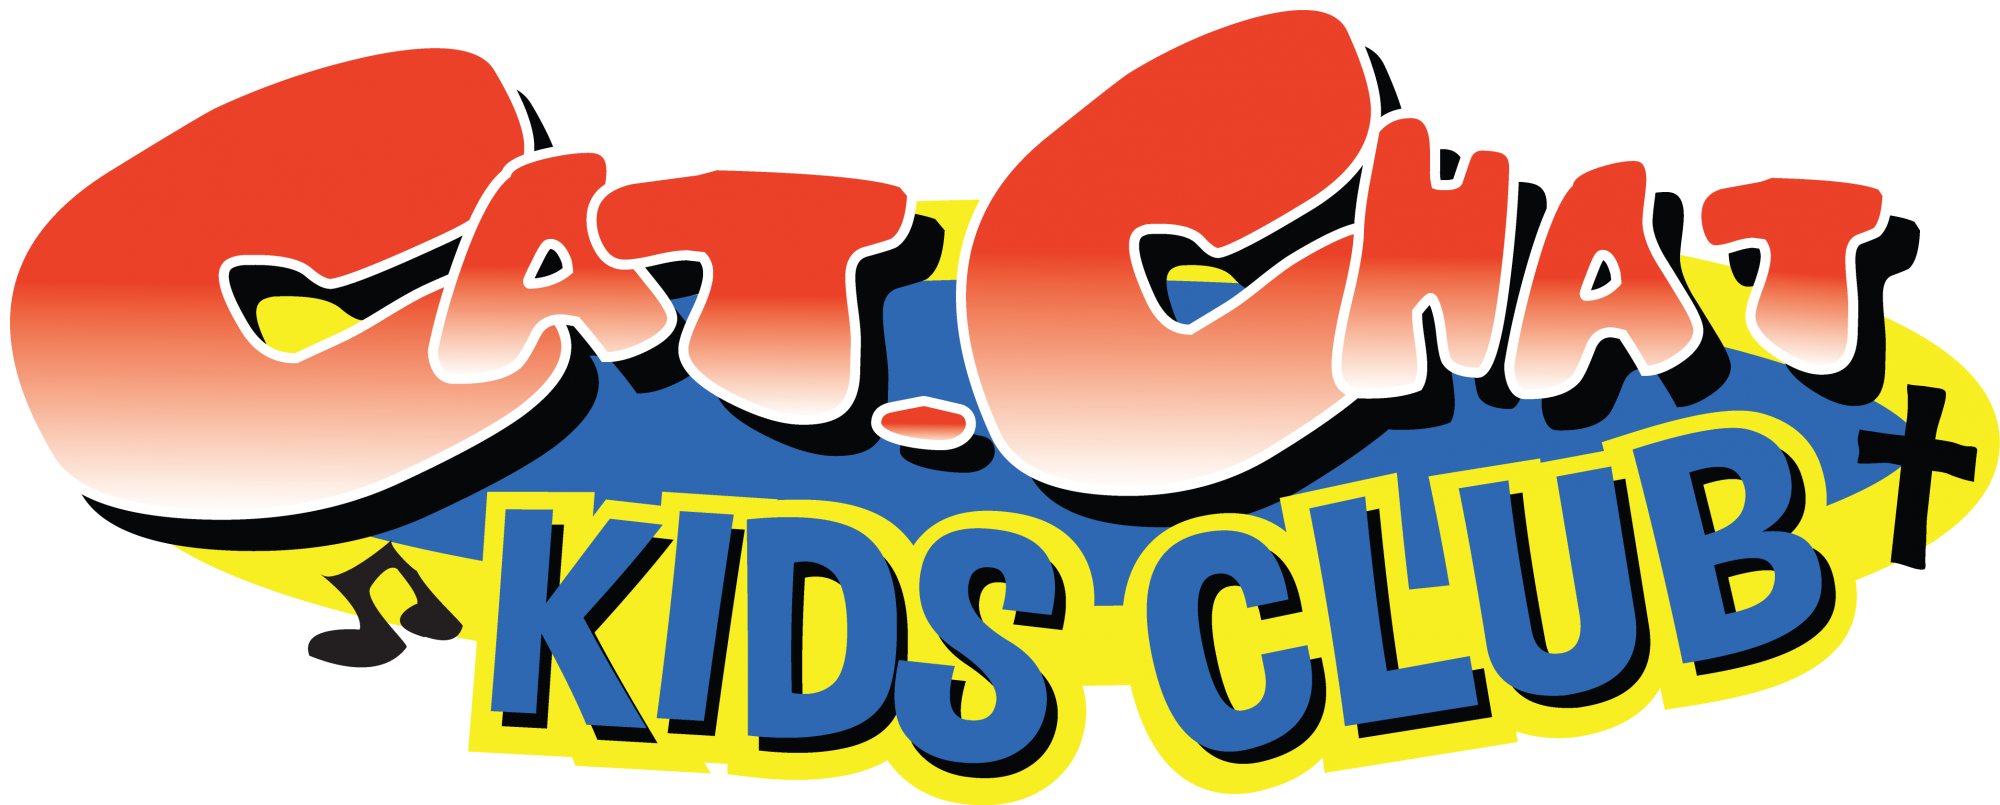 Kids_CLub_Logo-e1566318787920.png